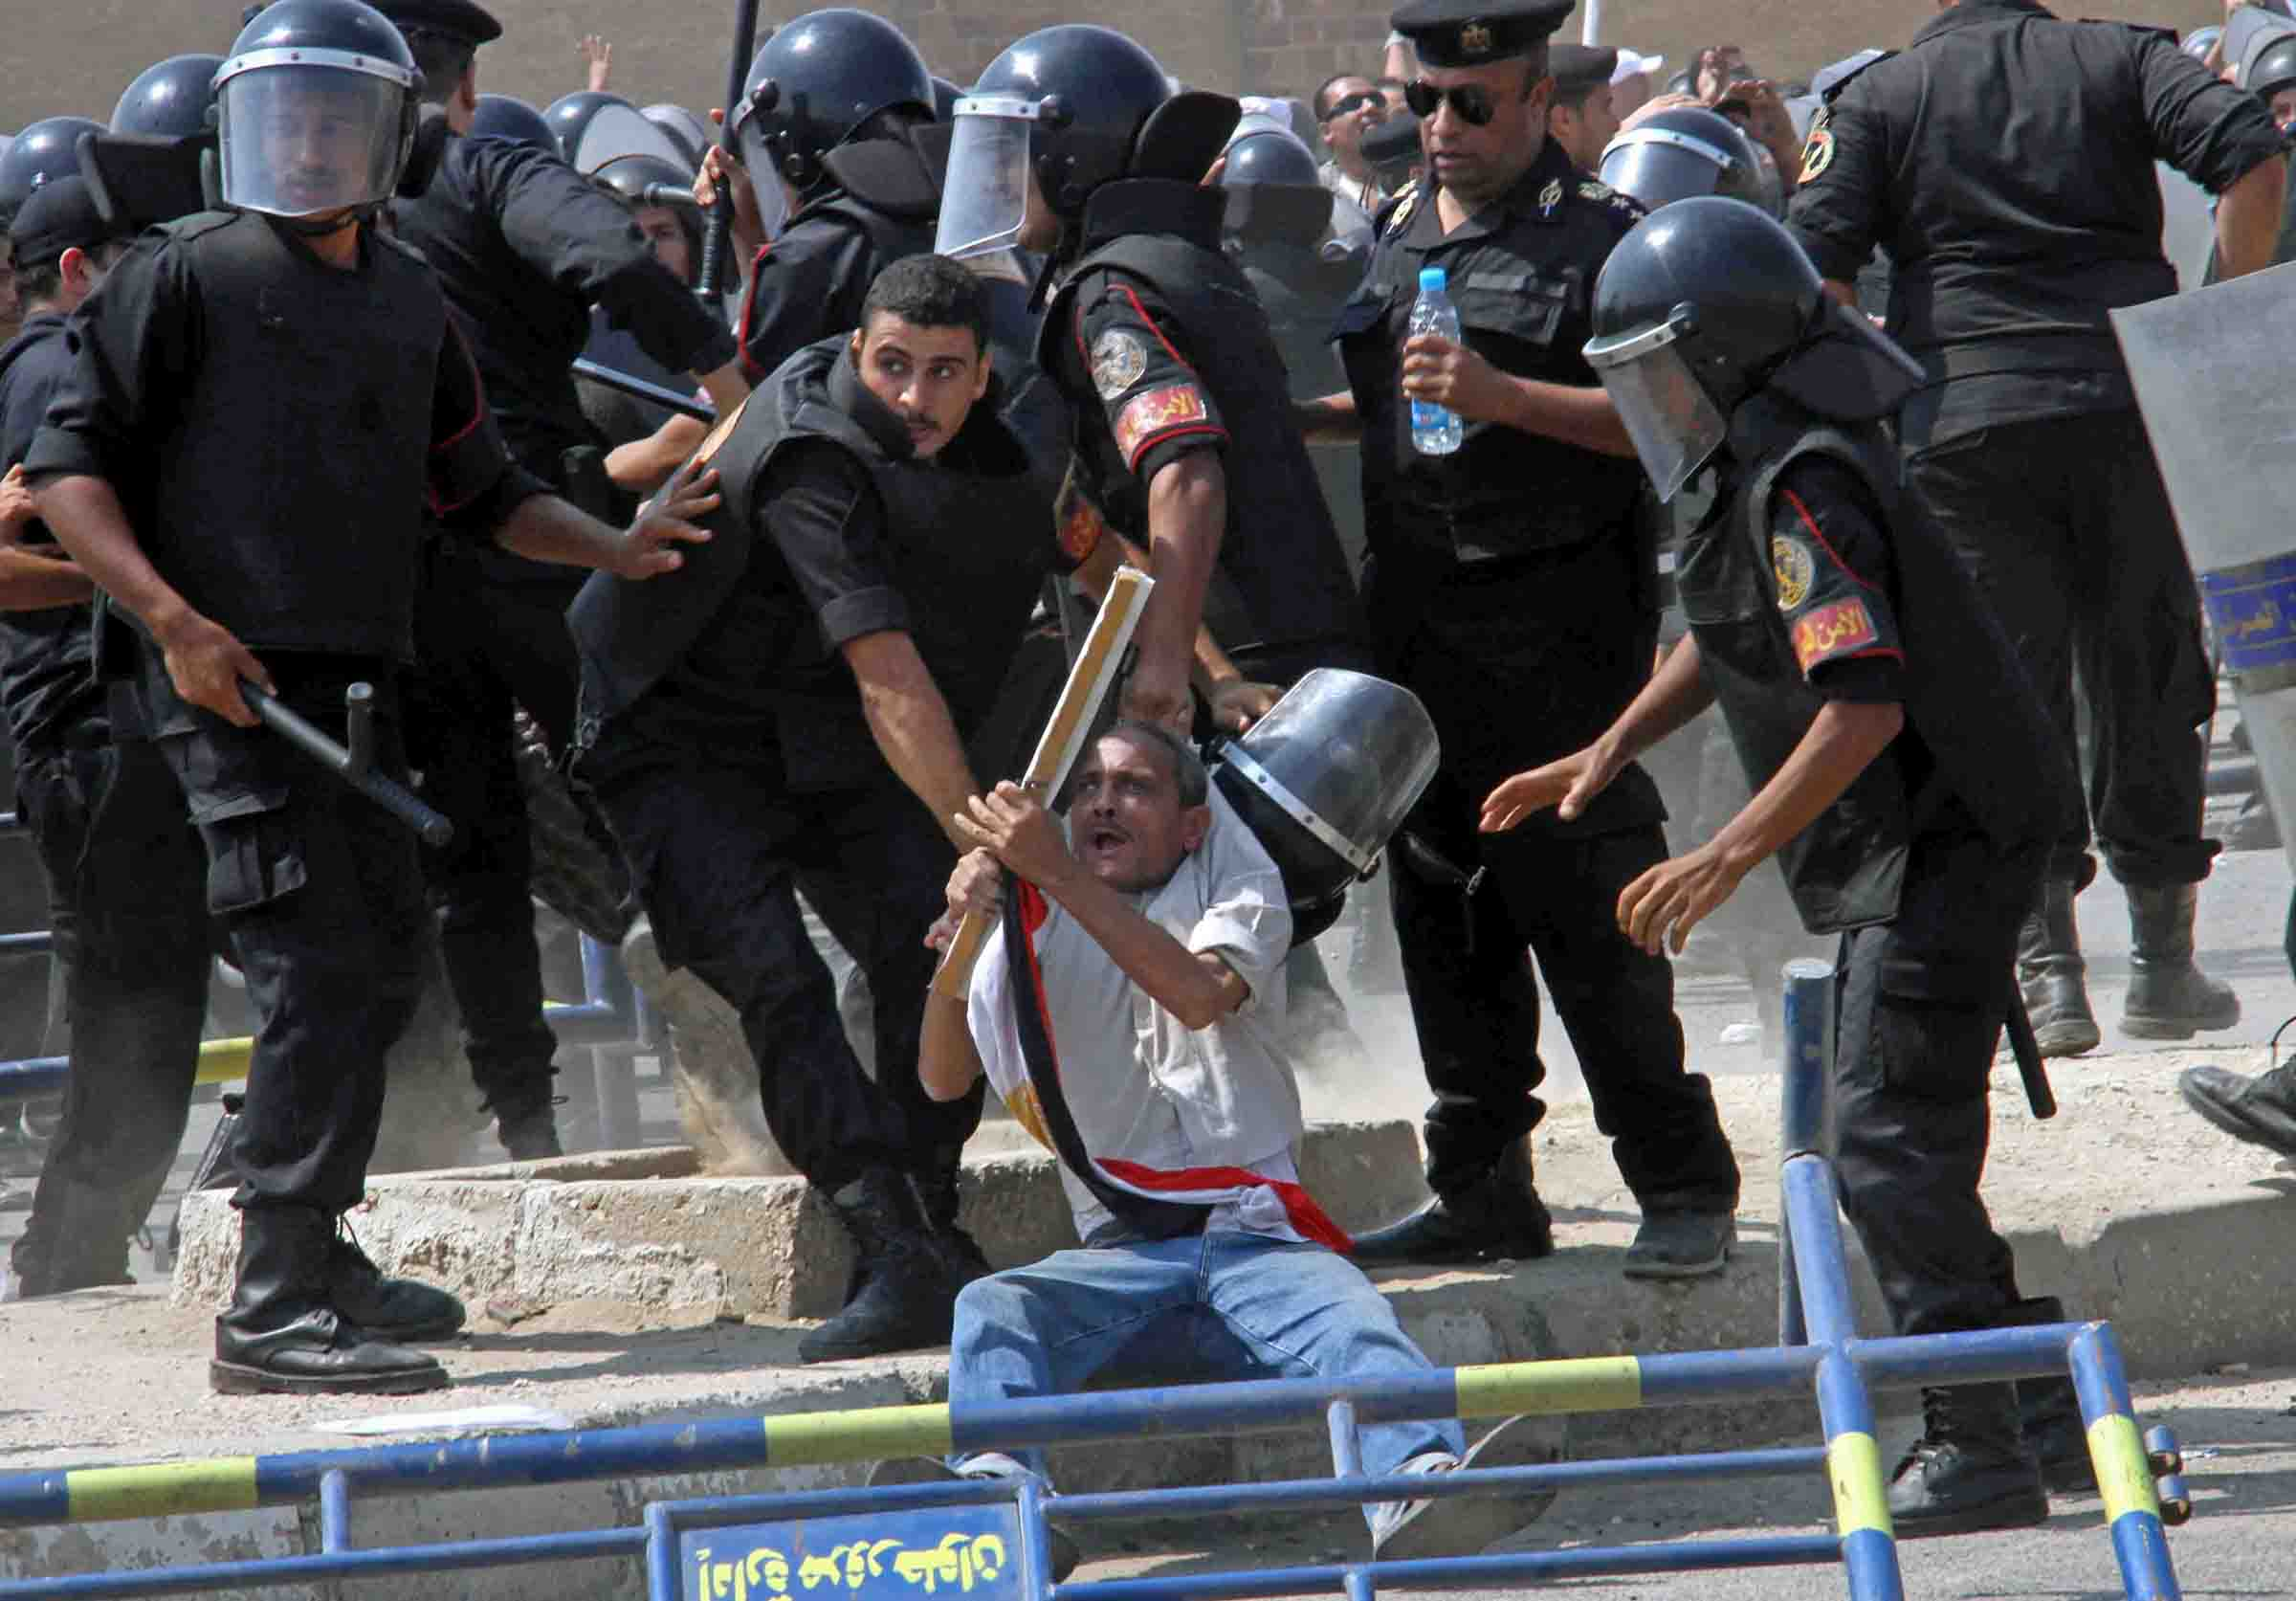 Policemen suppress opposition demonstrators in Cairo